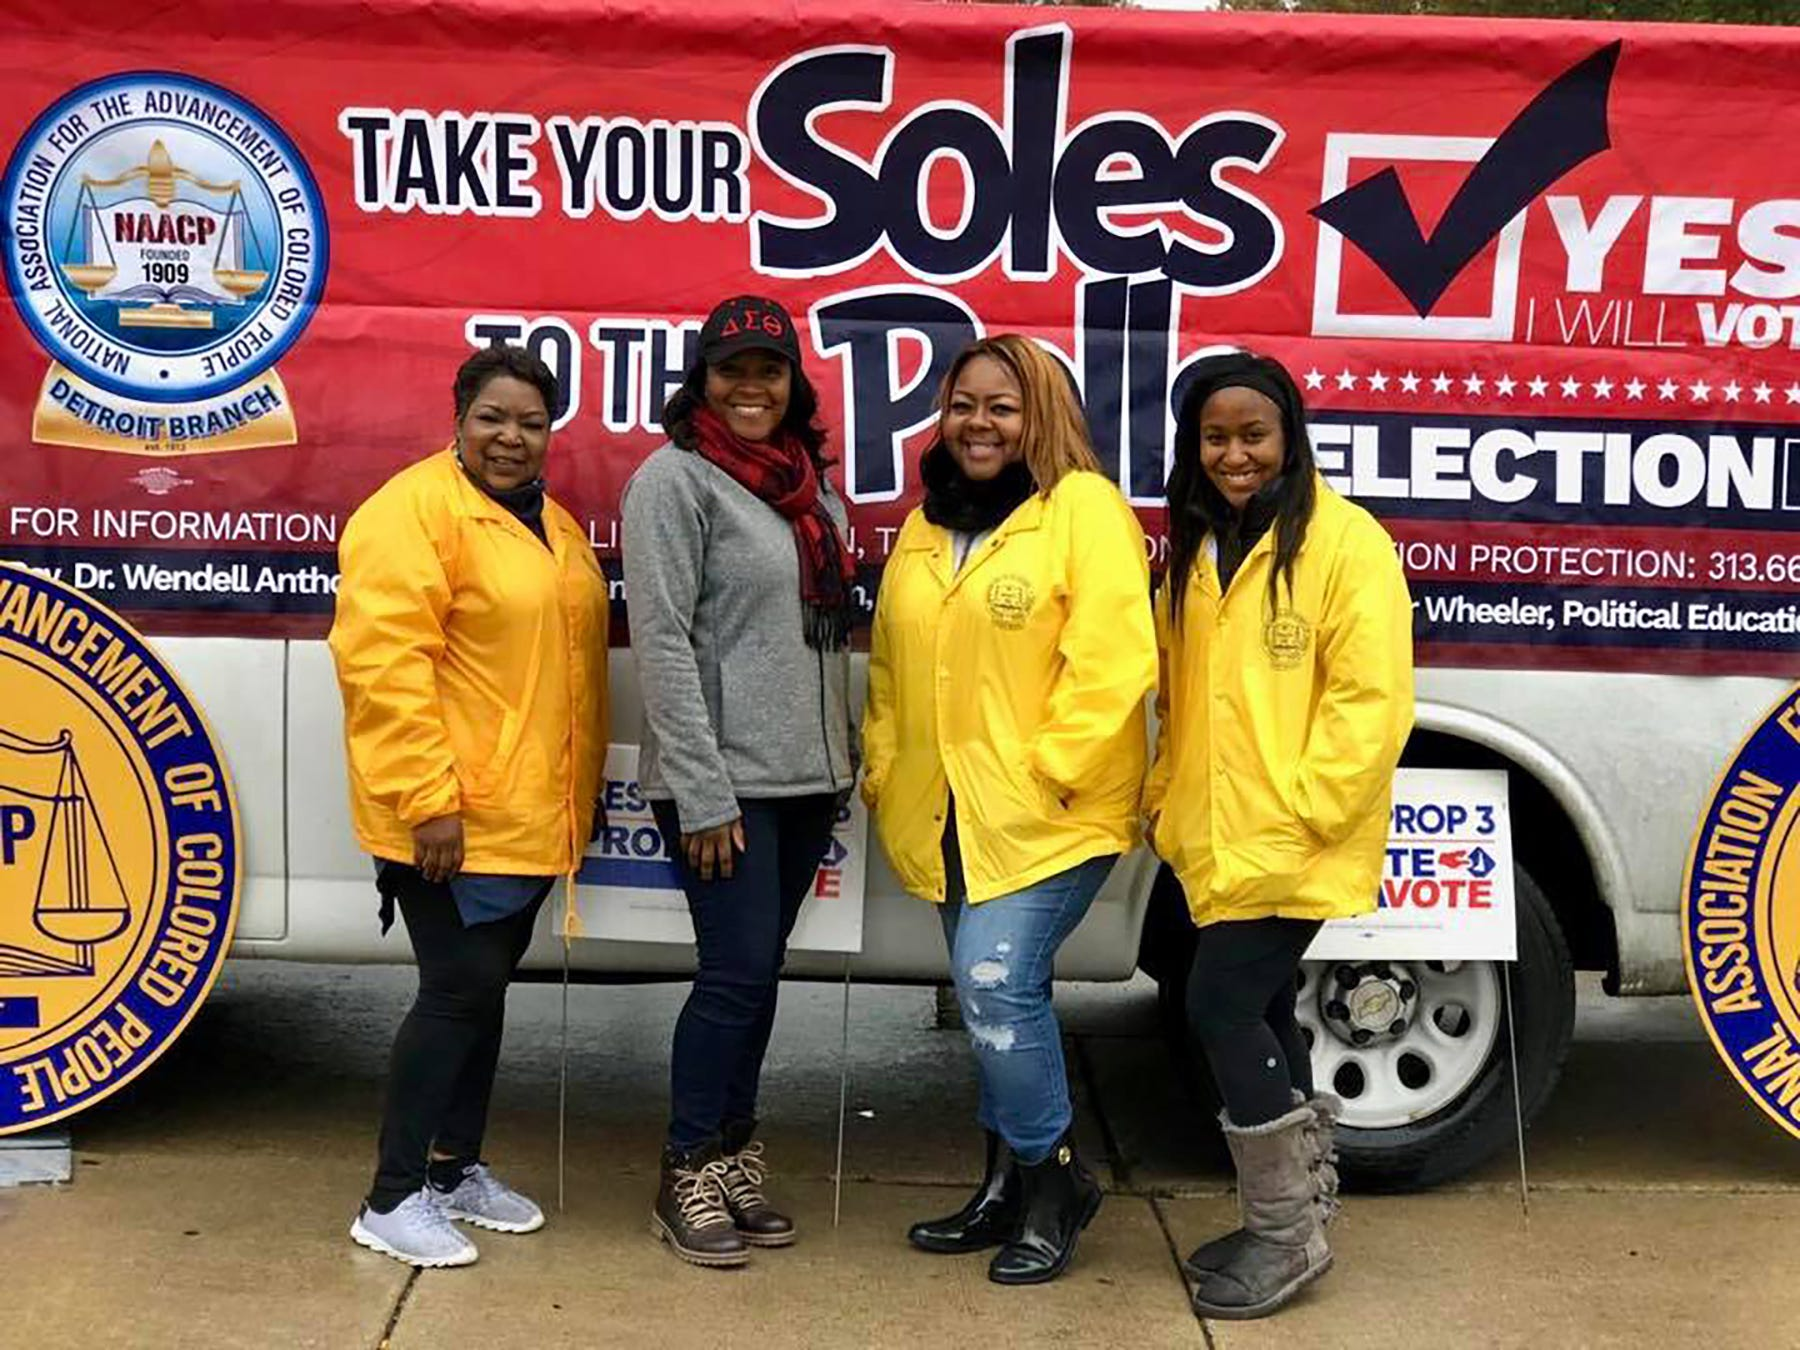 Using community events to encourage Detroit residents to exercise their right to vote, as well as introducing girls in Detroit to the political system are examples of outreach priorities for area members of The Links, Incorporated.